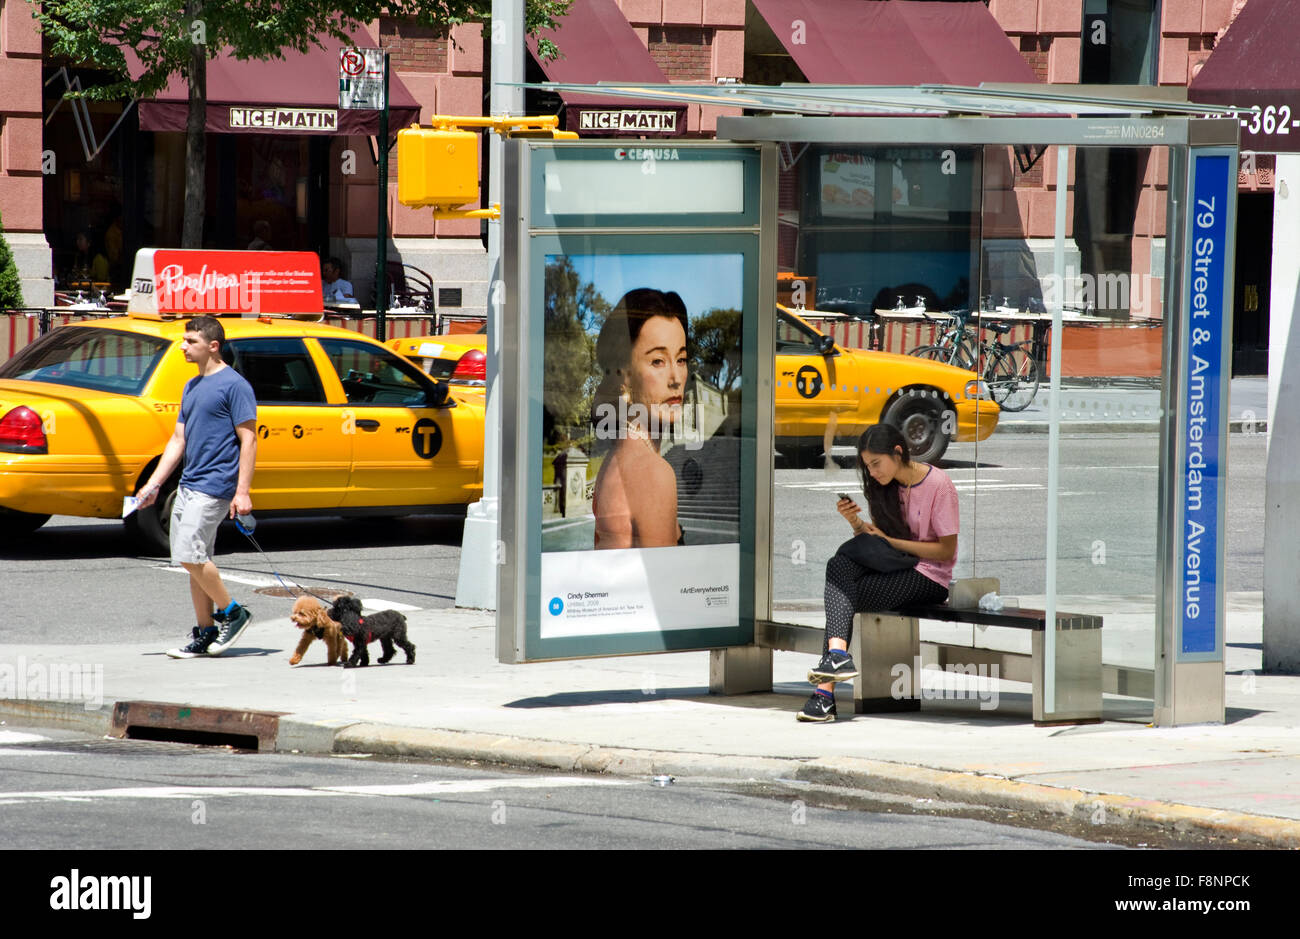 A Cindy Sherman fine art photograph is reproduced on a bus shelter advertising panel in New York  City as part of Stock Photo